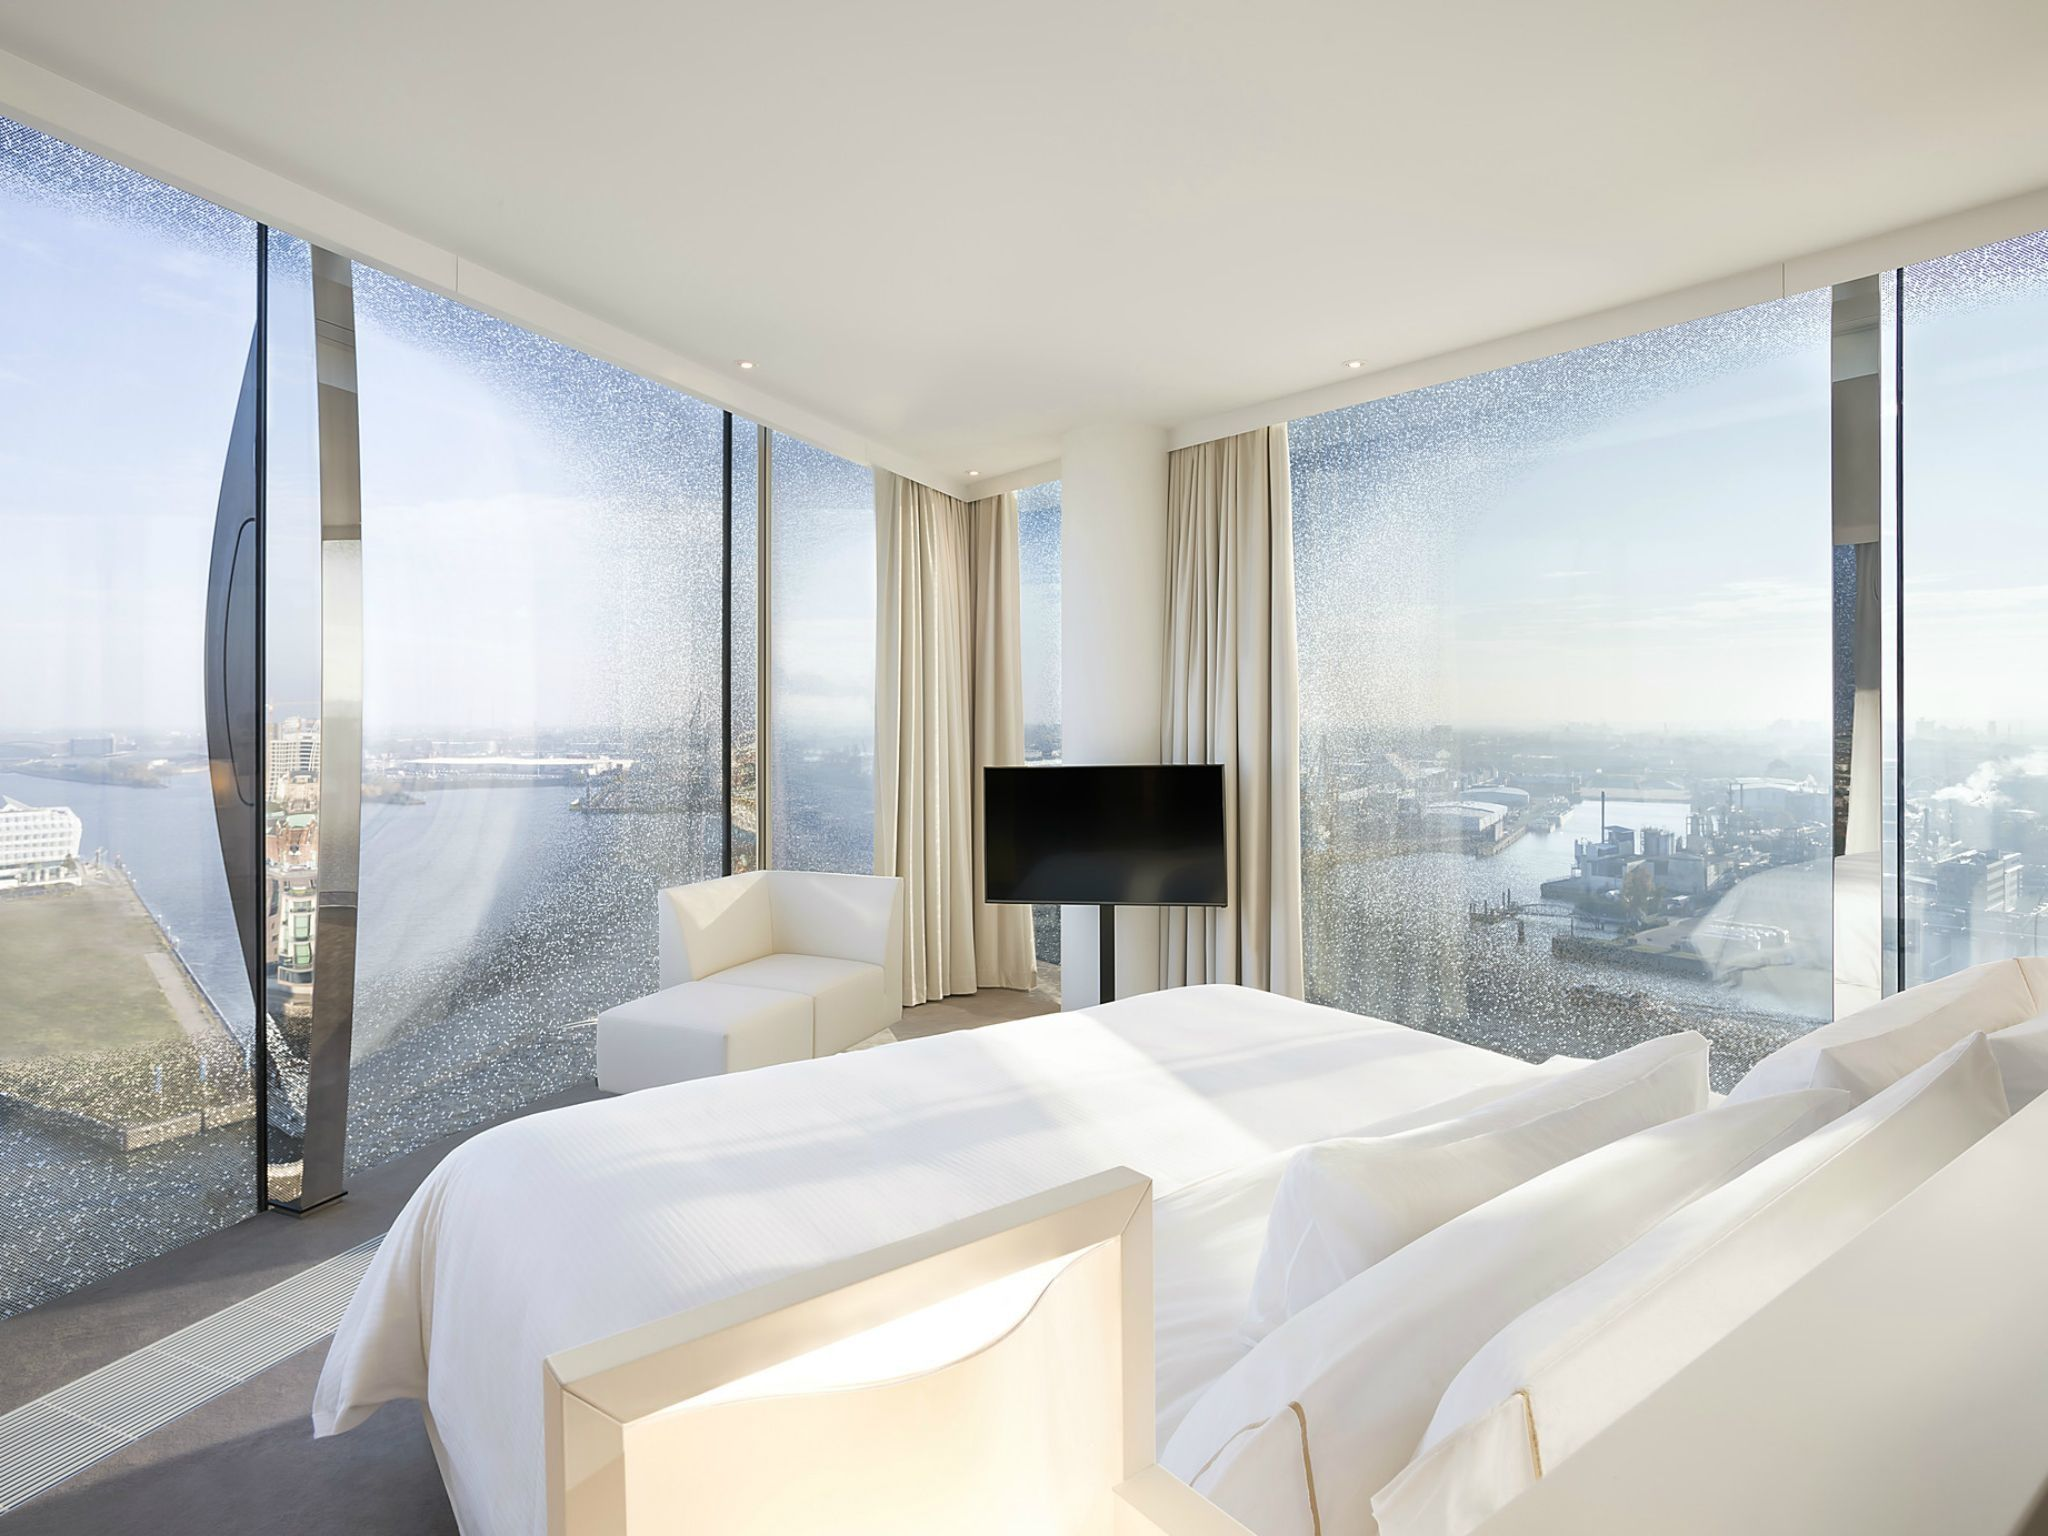 Horizont Luxus Suite in Hamburg - Westin Hotel